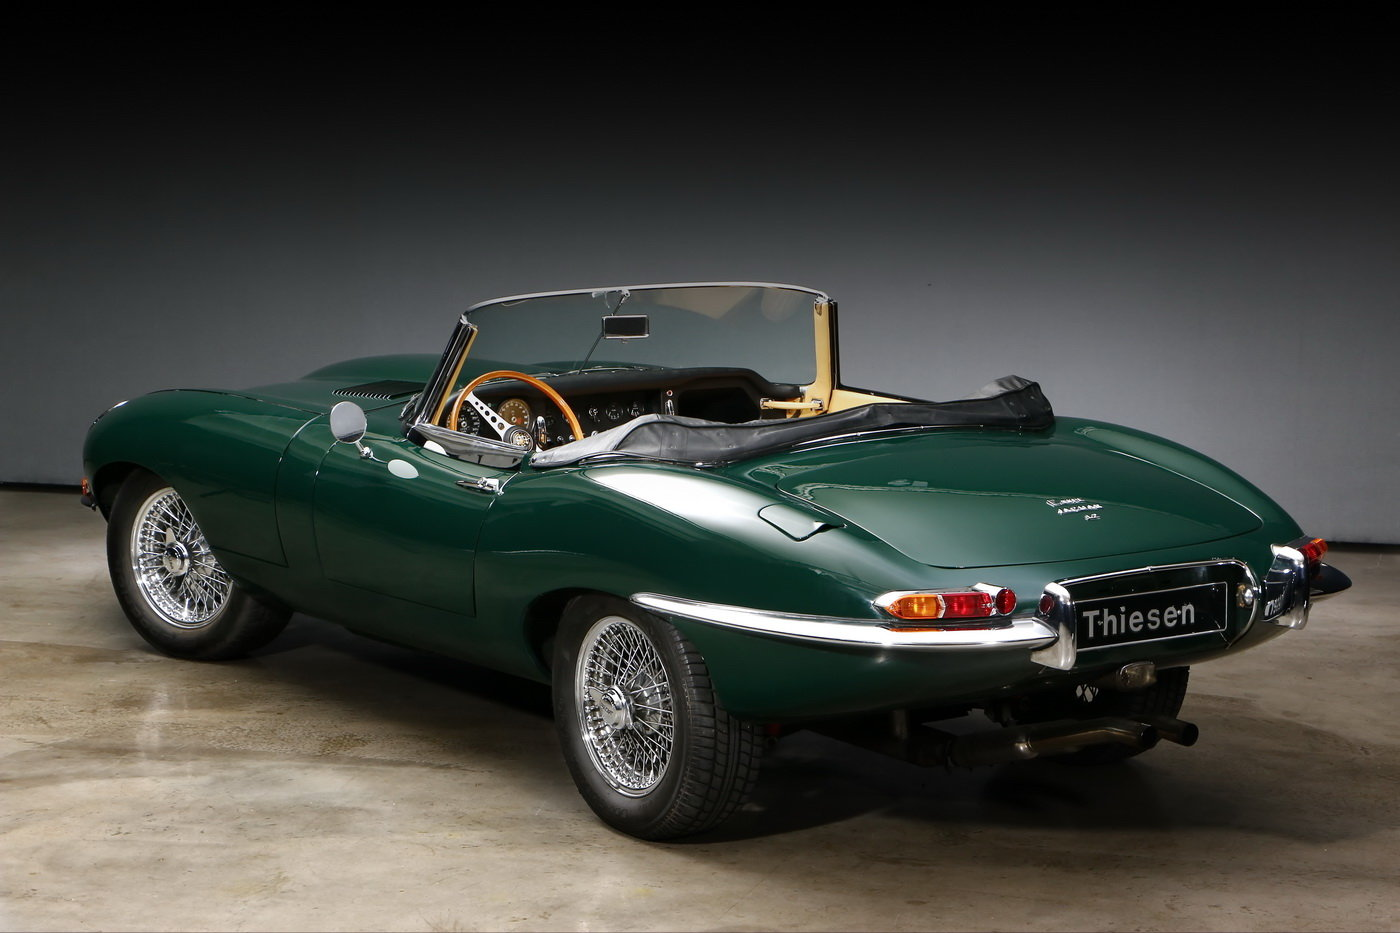 1965 Jaguar E-Type 1 Series 4.2 ltr Roadster For Sale (picture 3 of 6)